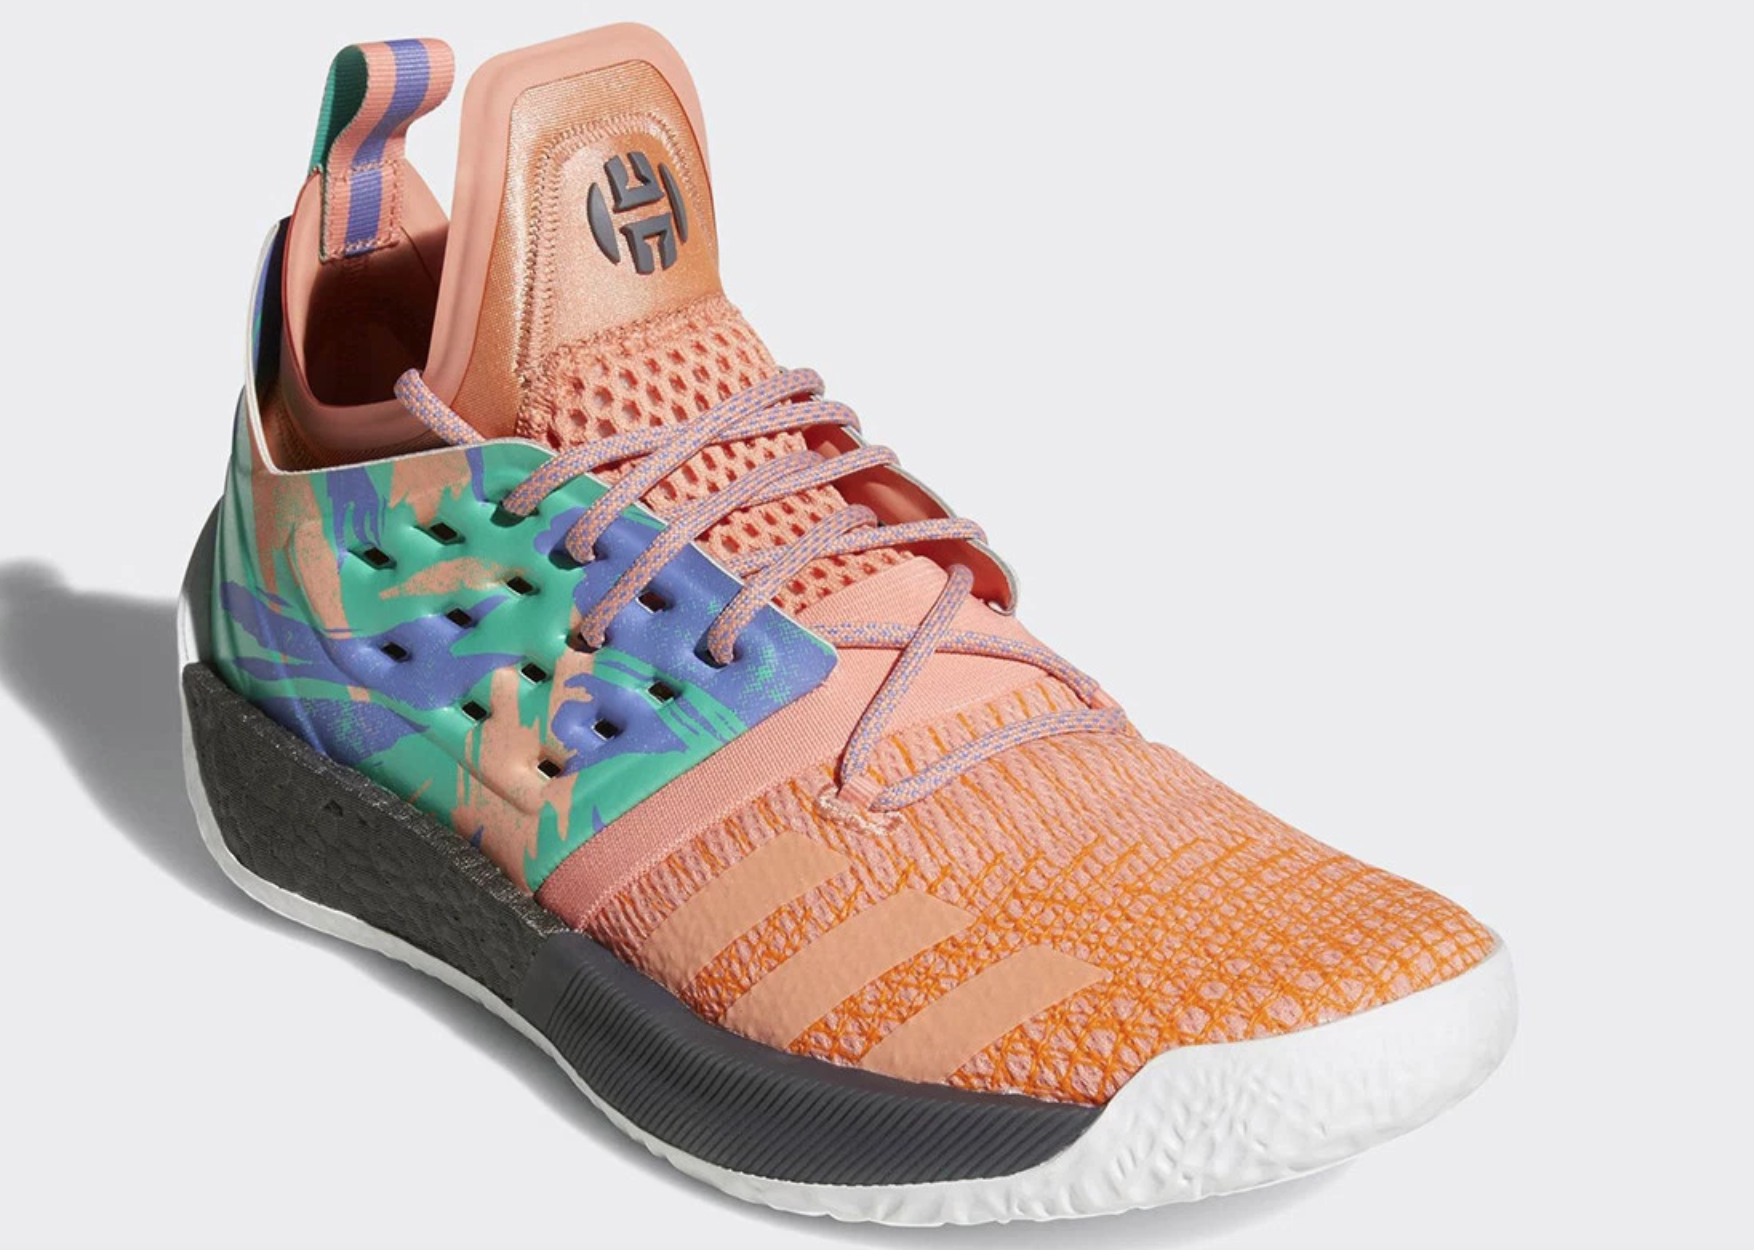 70eef4ace44 Release date for the Adidas Harden Vol. 2 is available now in a Coral and  Red colorway for  140.00 USD. Stay tuned for updated release information as  we get ...